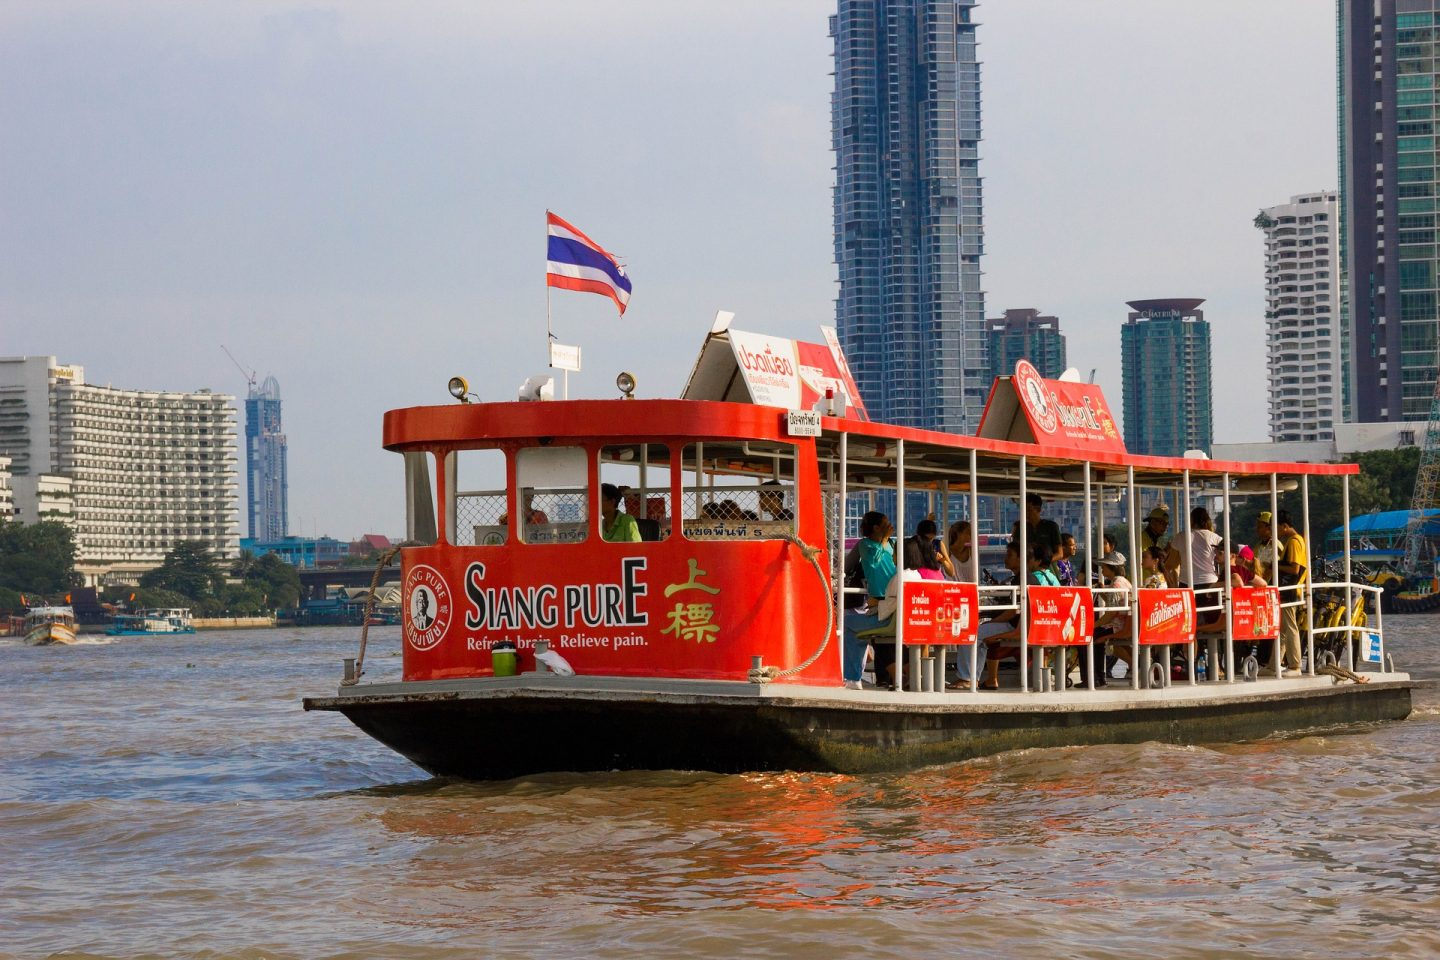 A red river crossing ferry, crossing the Chao Phraya River in Bangkok